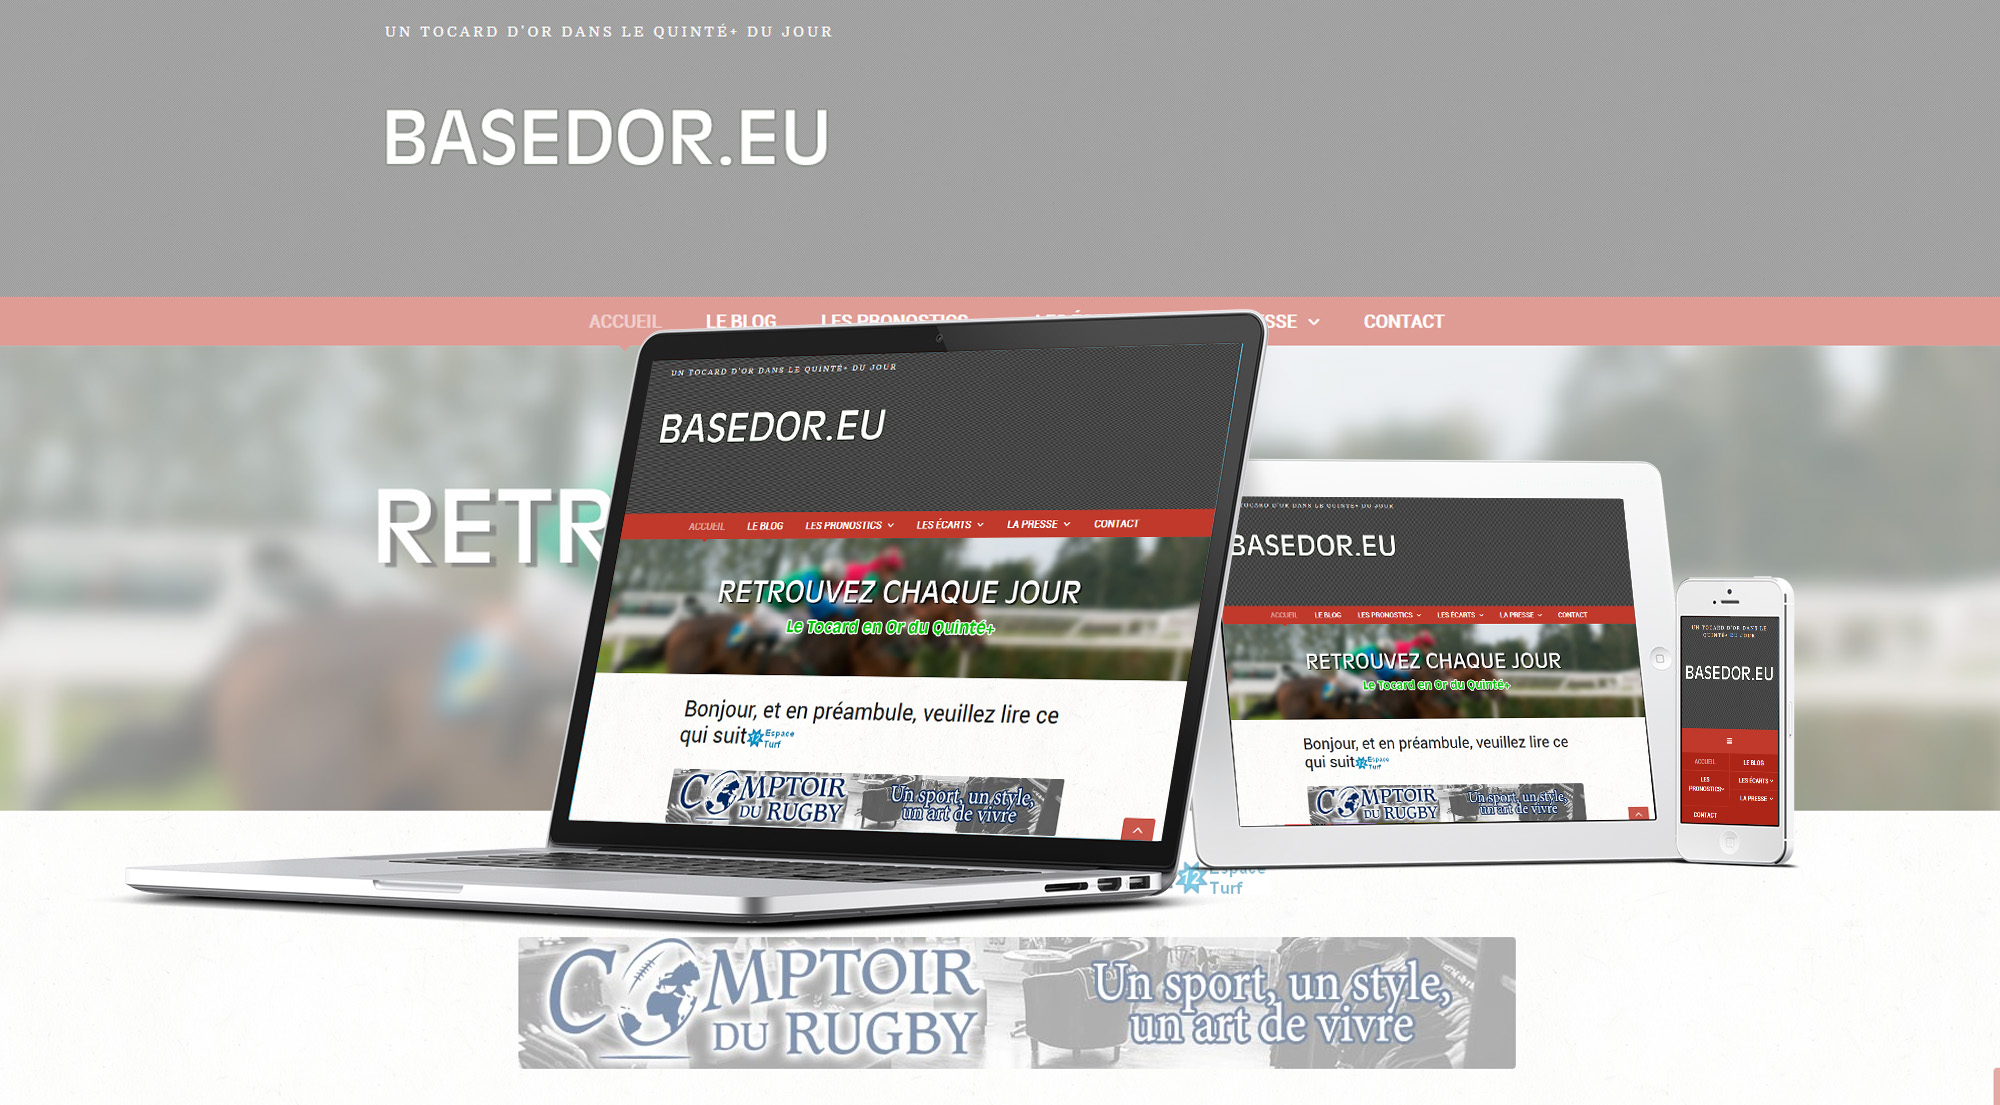 Site pronostic hippique basedor.eu - MW communicaton